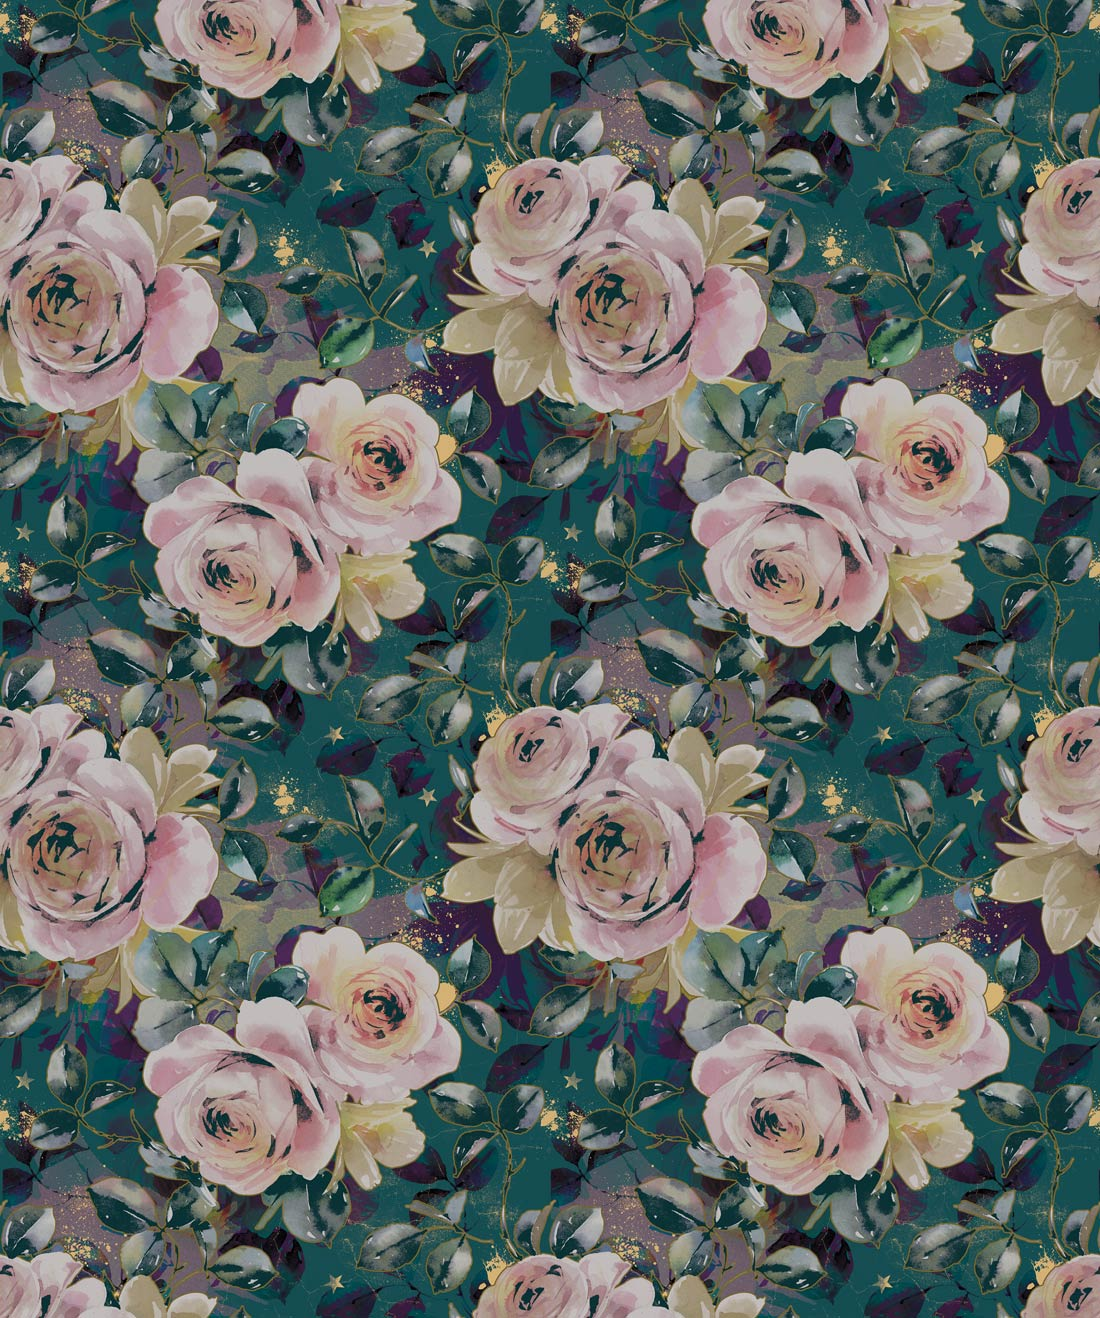 English Roses Elegant Floral Designer Wallpaper Milton King